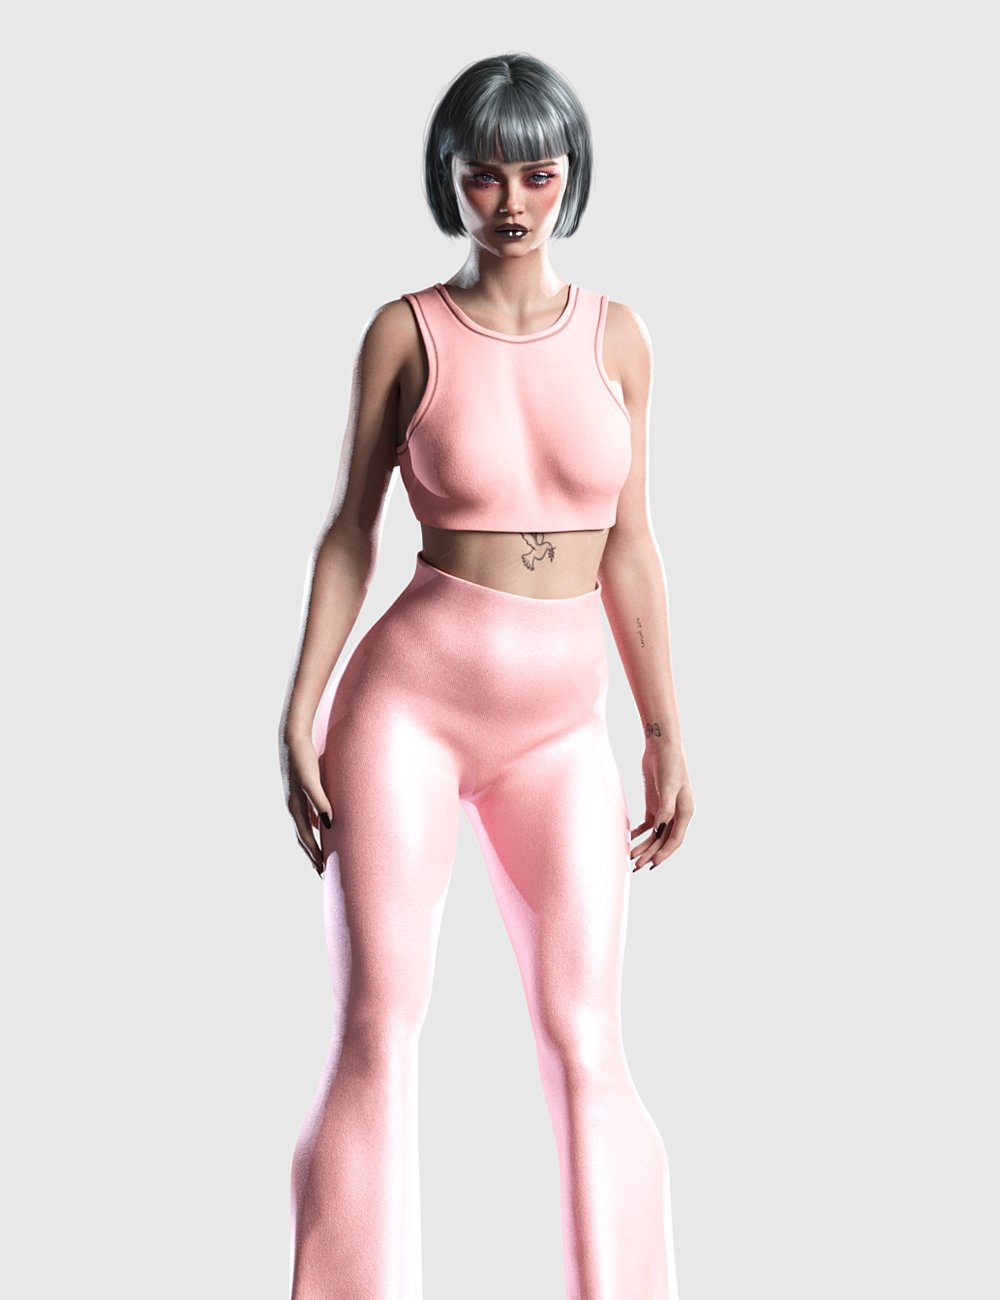 dForce Flare Outfit for Genesis 8 and 8.1 Females by: Romeo, 3D Models by Daz 3D